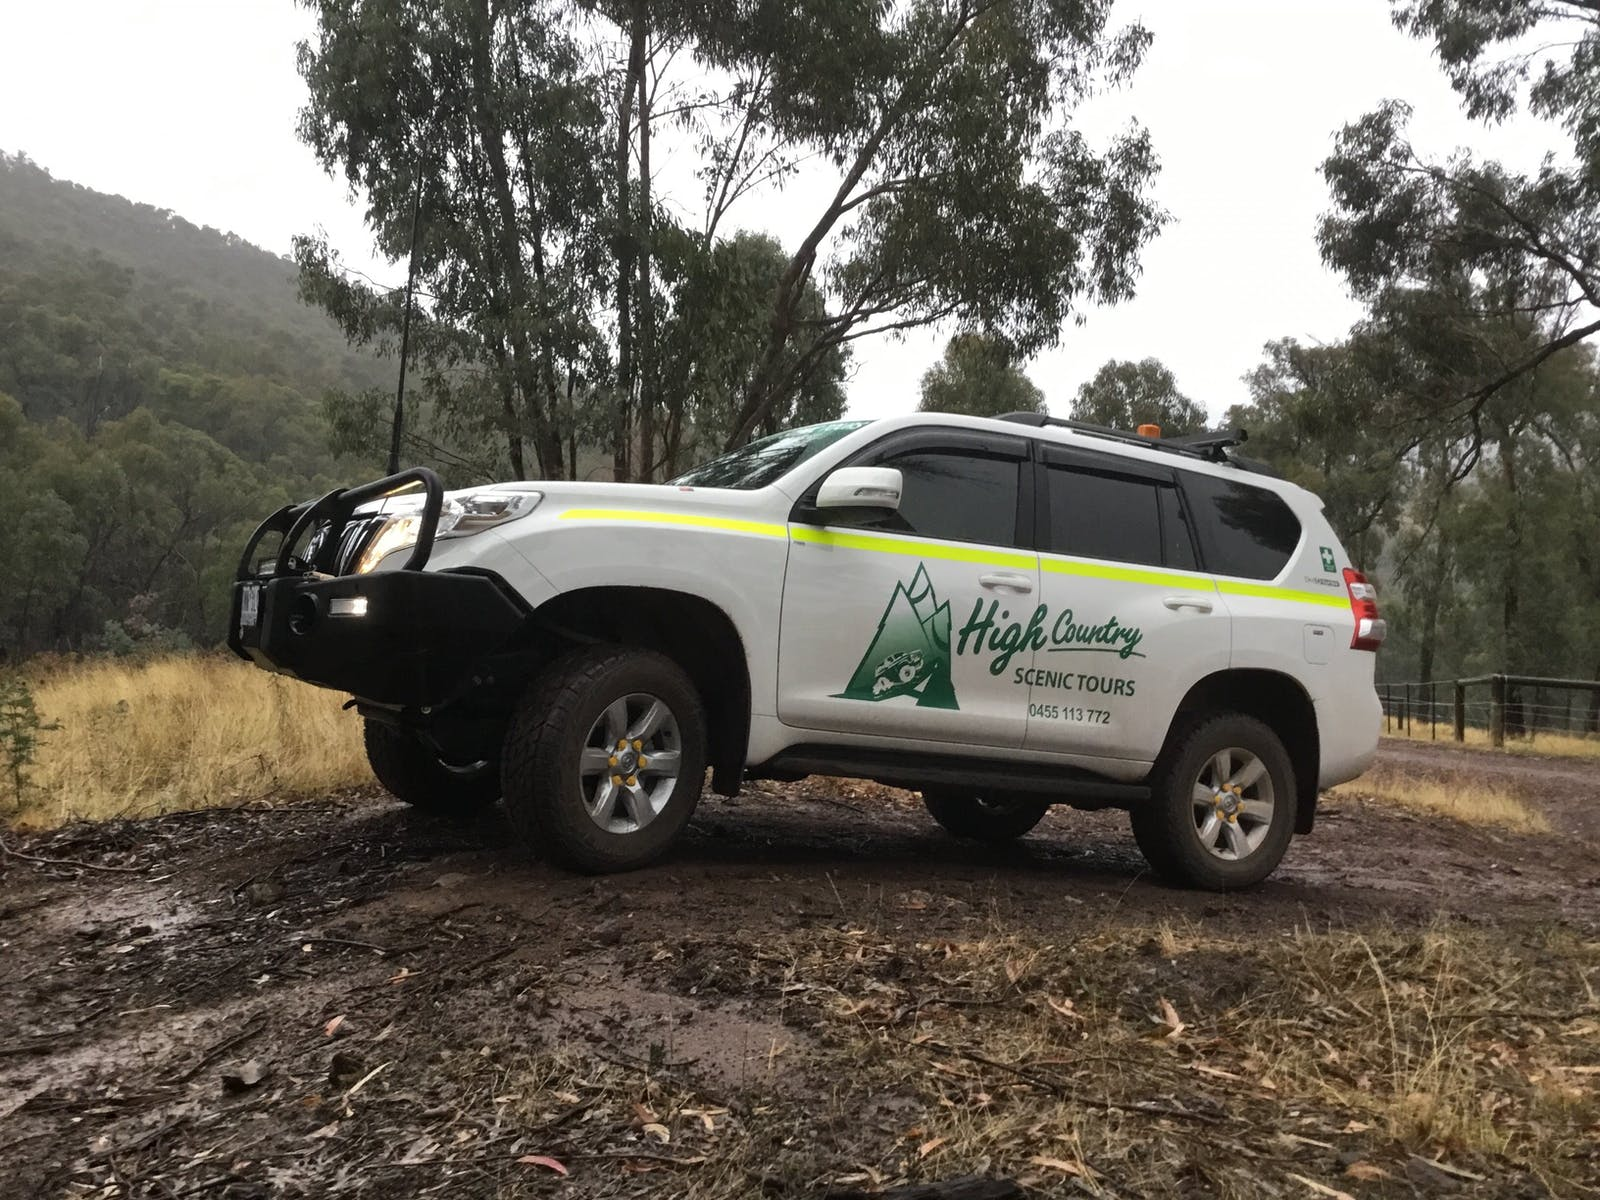 High Country Scenic Tours